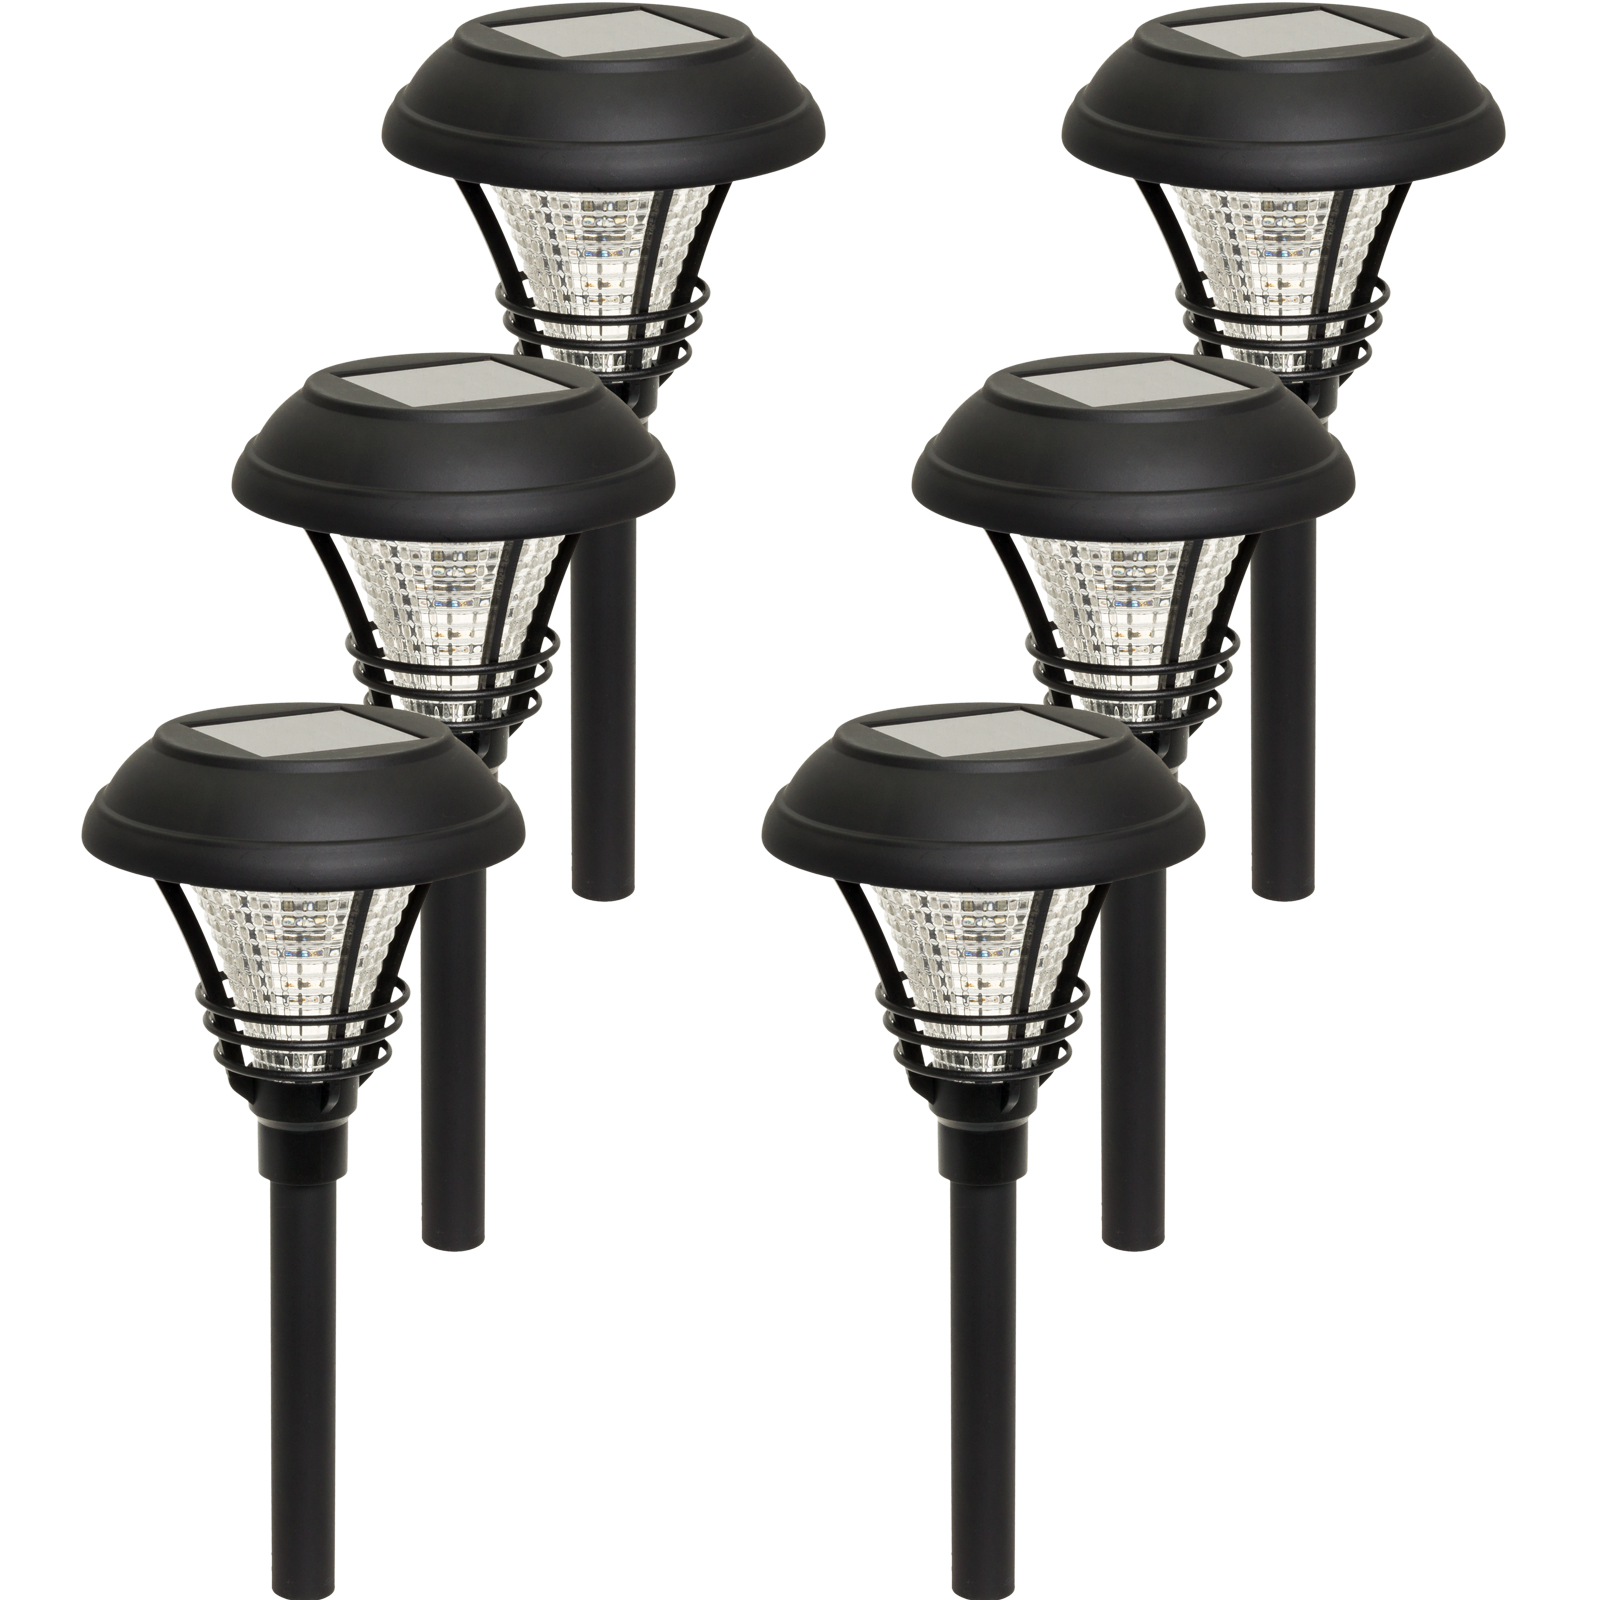 WESTINGHOUSE NEW Kenbury Solar Garden 10 Lumens LED Stake Path Lights (6 Pack)